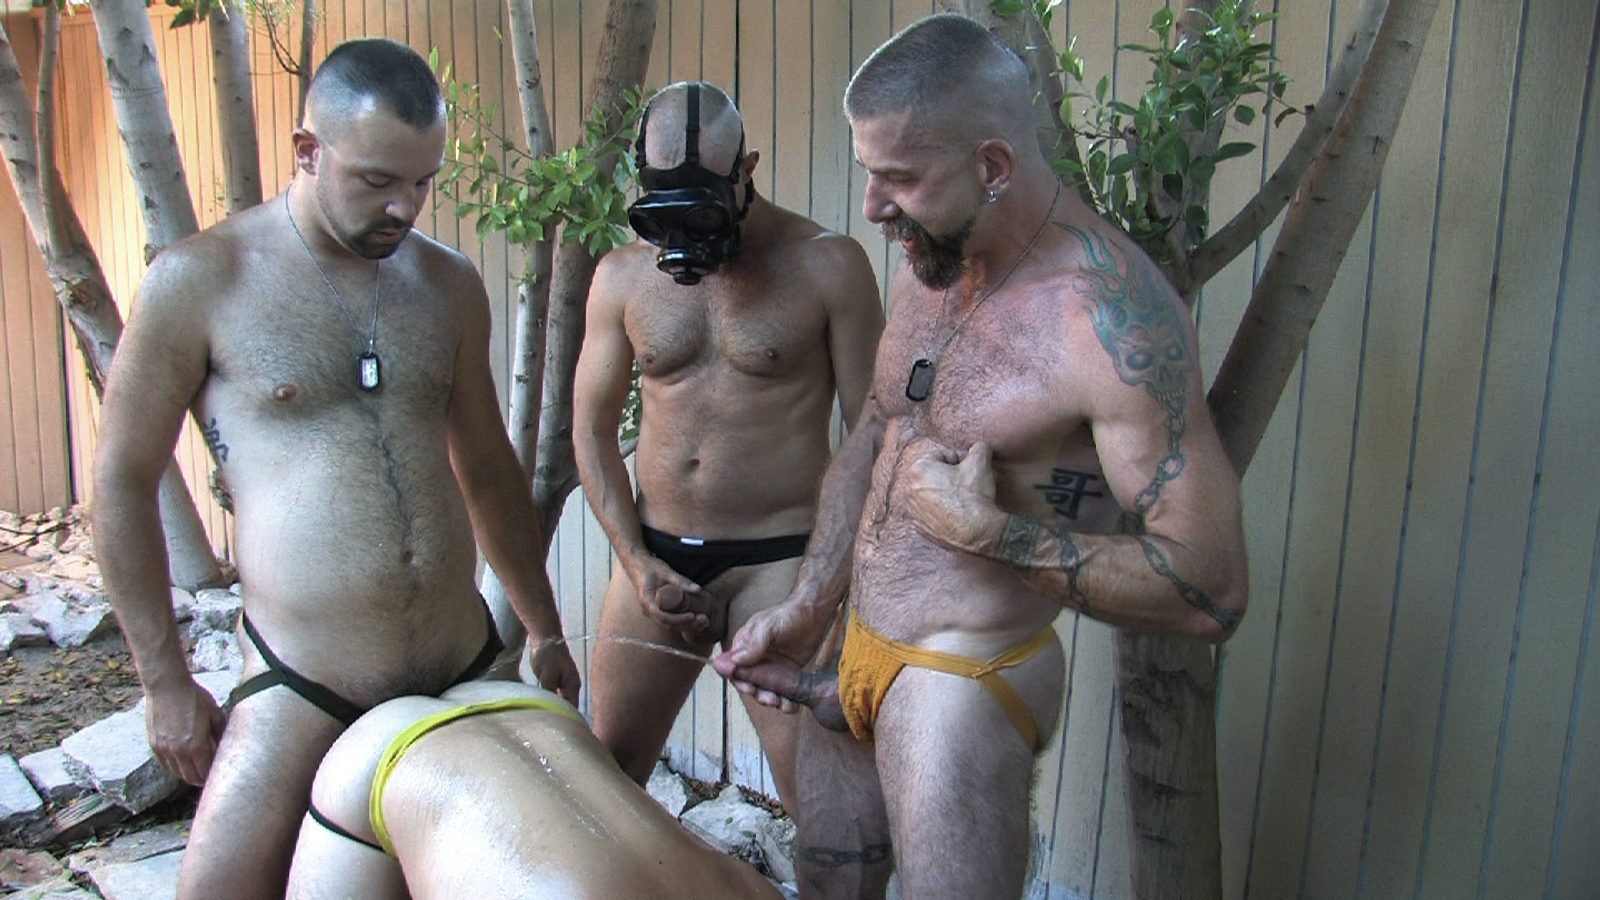 bay-men-pissing-video-medical-domination-play